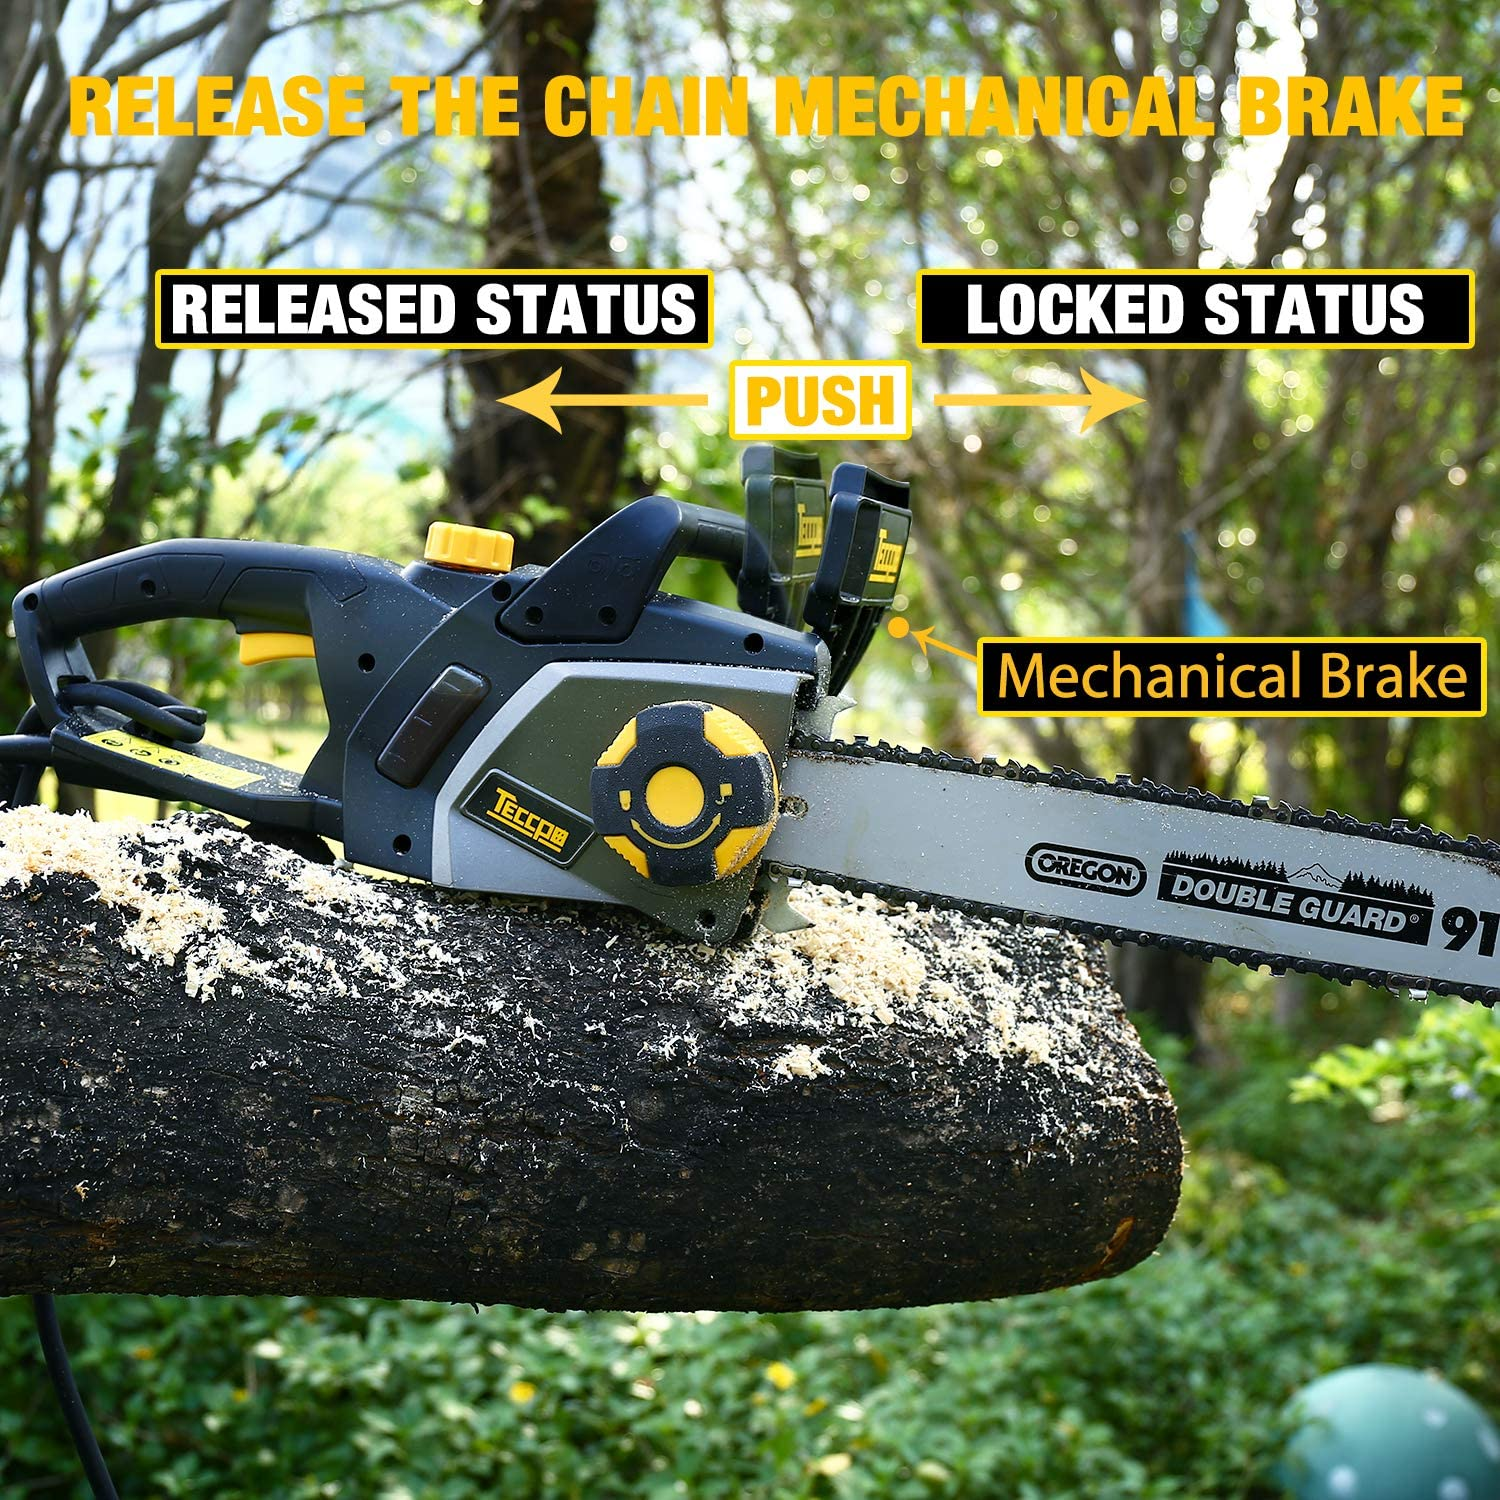 TECCPO TACS01G Chainsaws product image 3